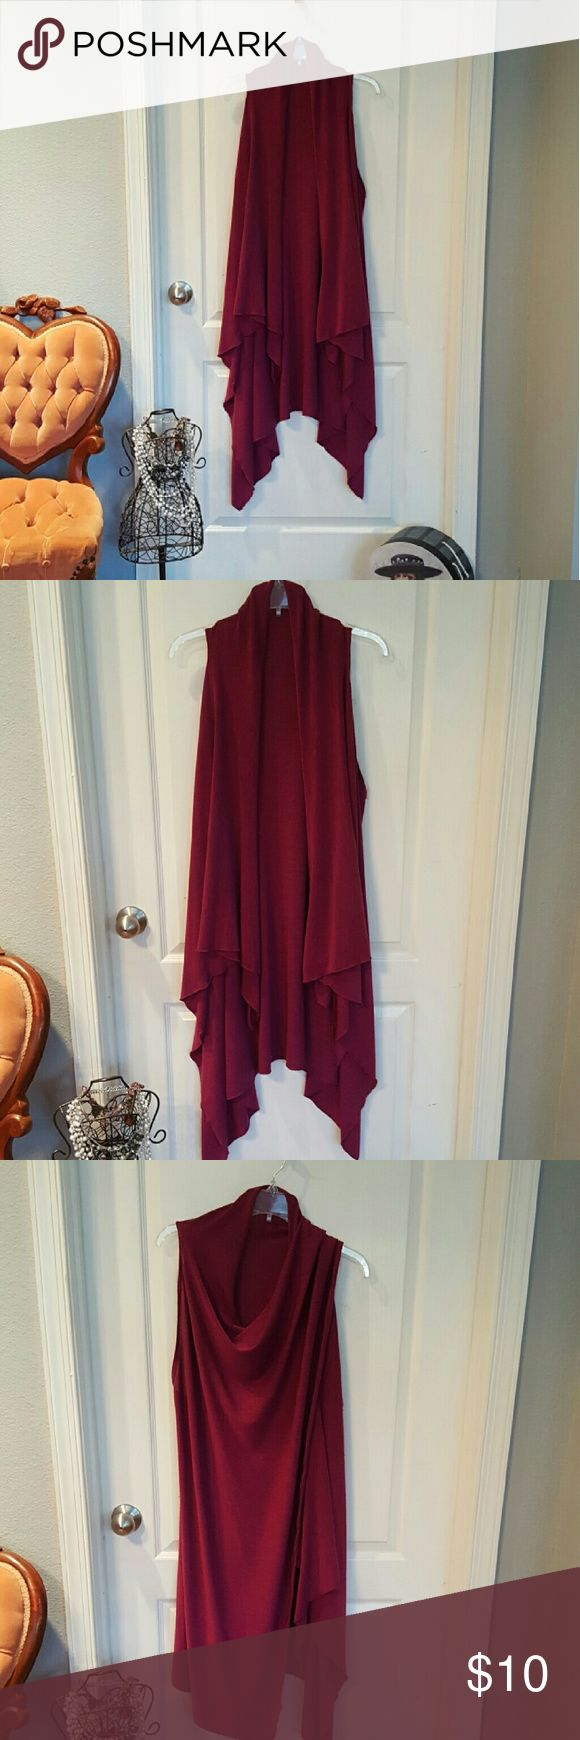 Flowy duster/wrap Lovely, long duster or wrap can be worn different ways. Color is a deep purple or raspberry. Excellent condition. Smoke free home. Tops